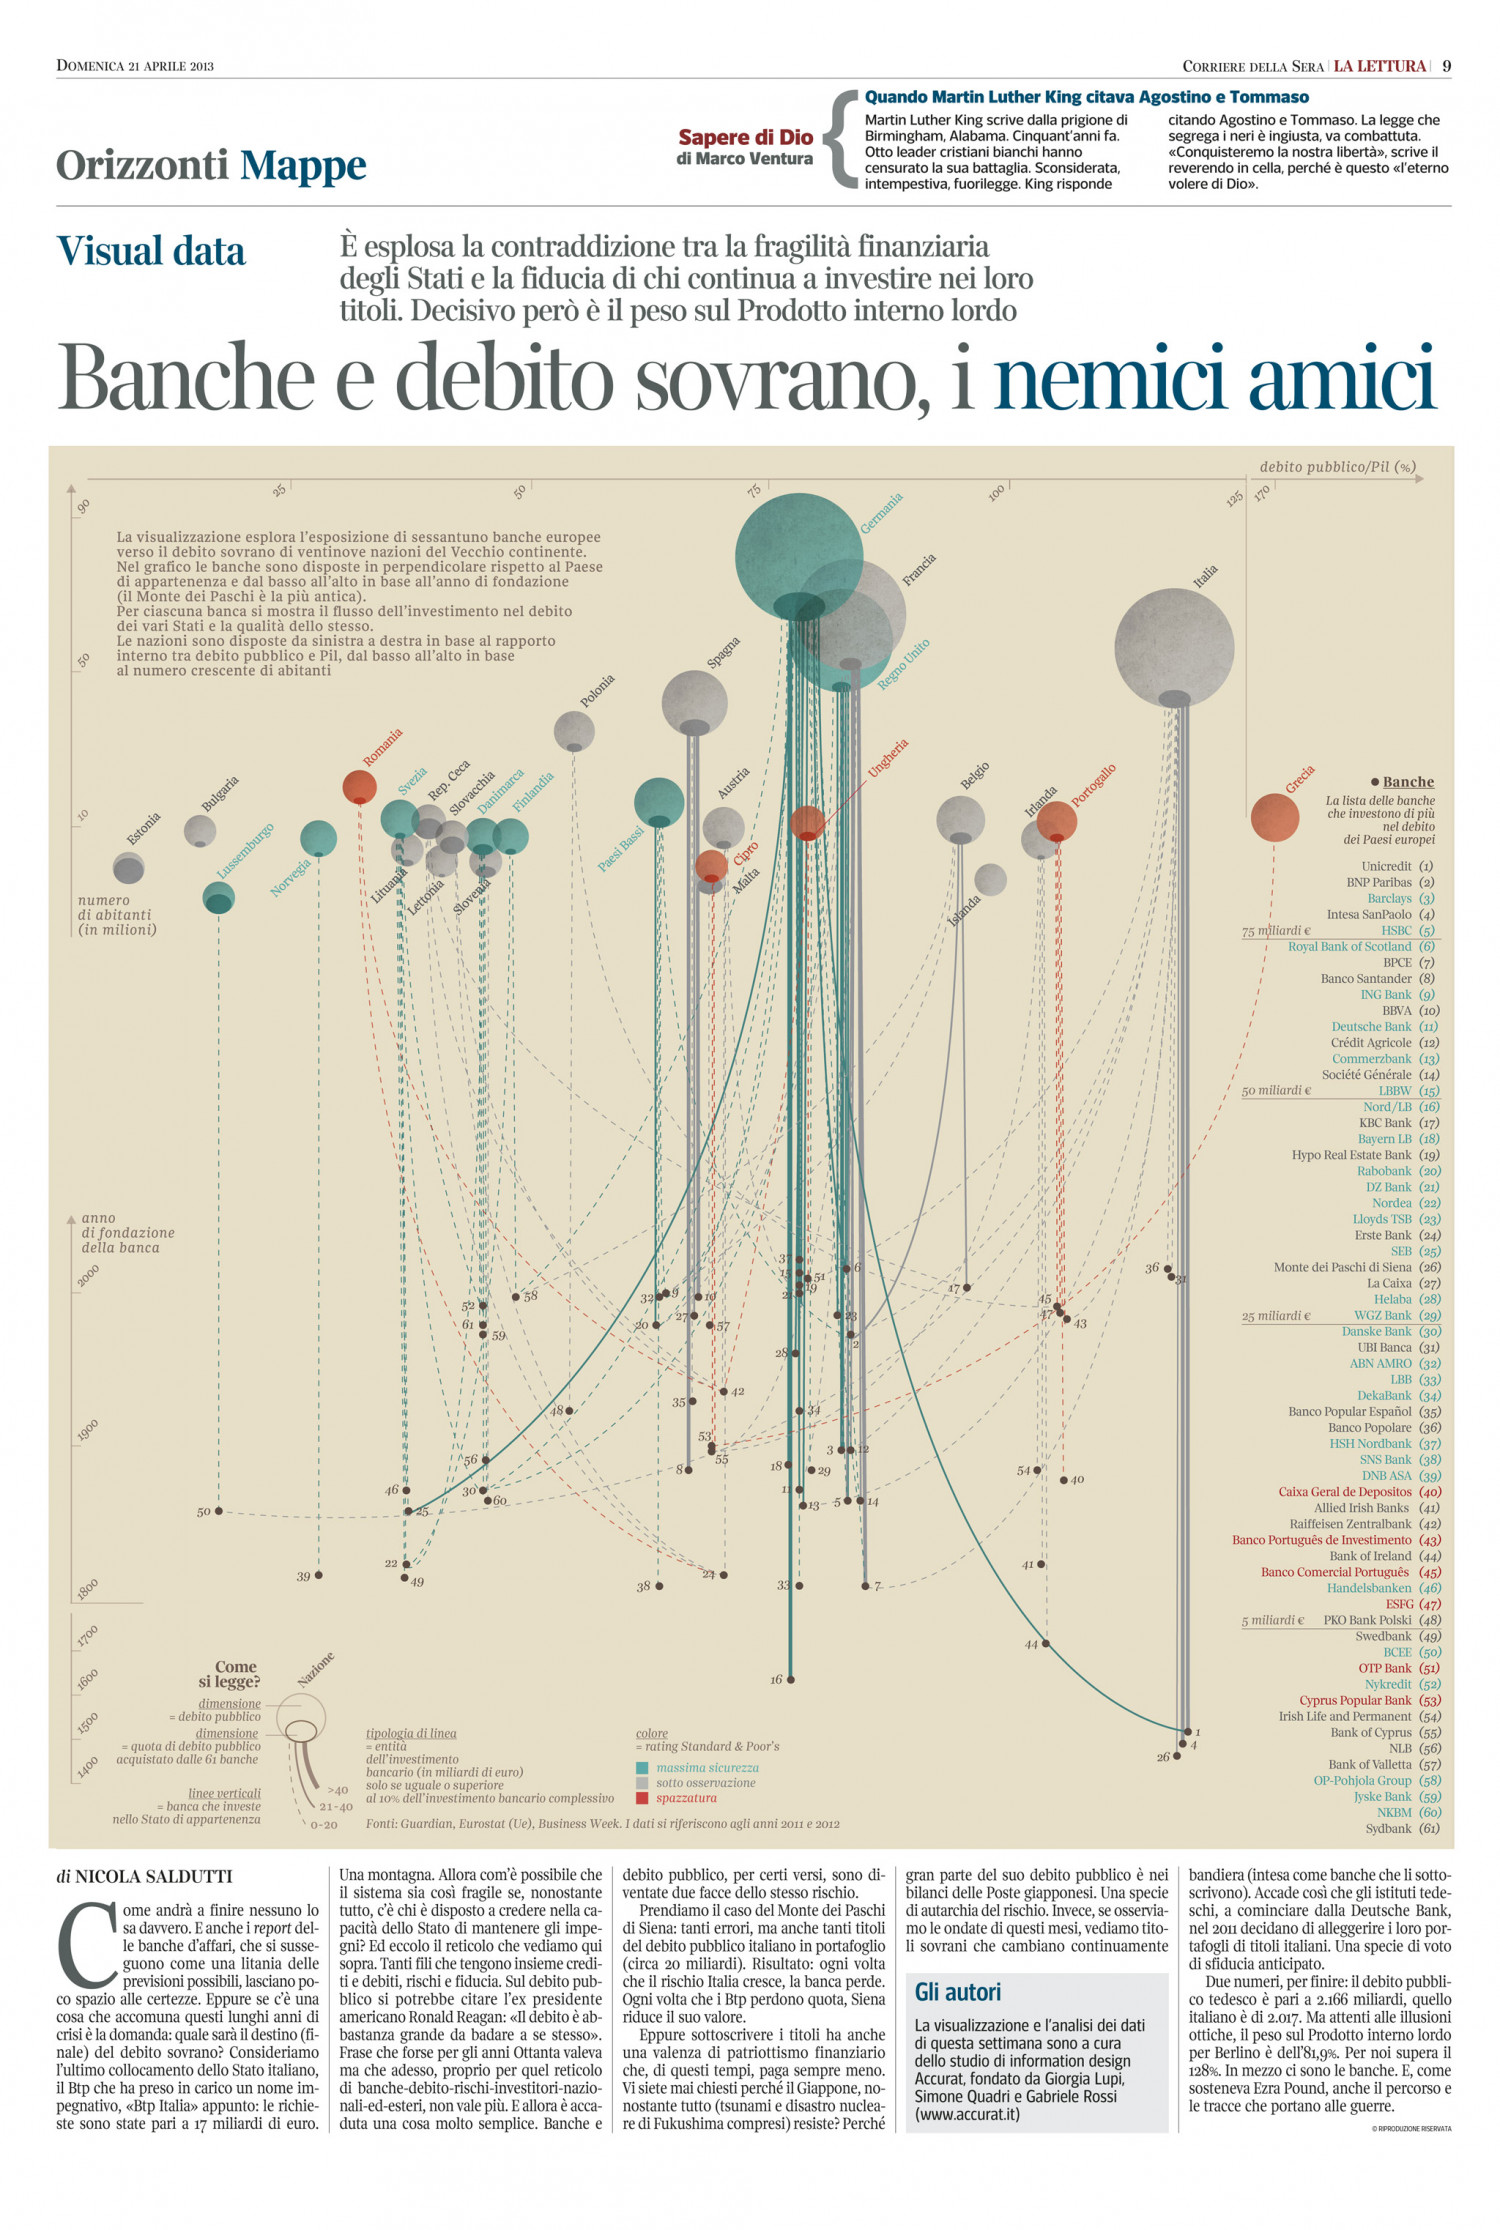 European banks and government debt Infographic